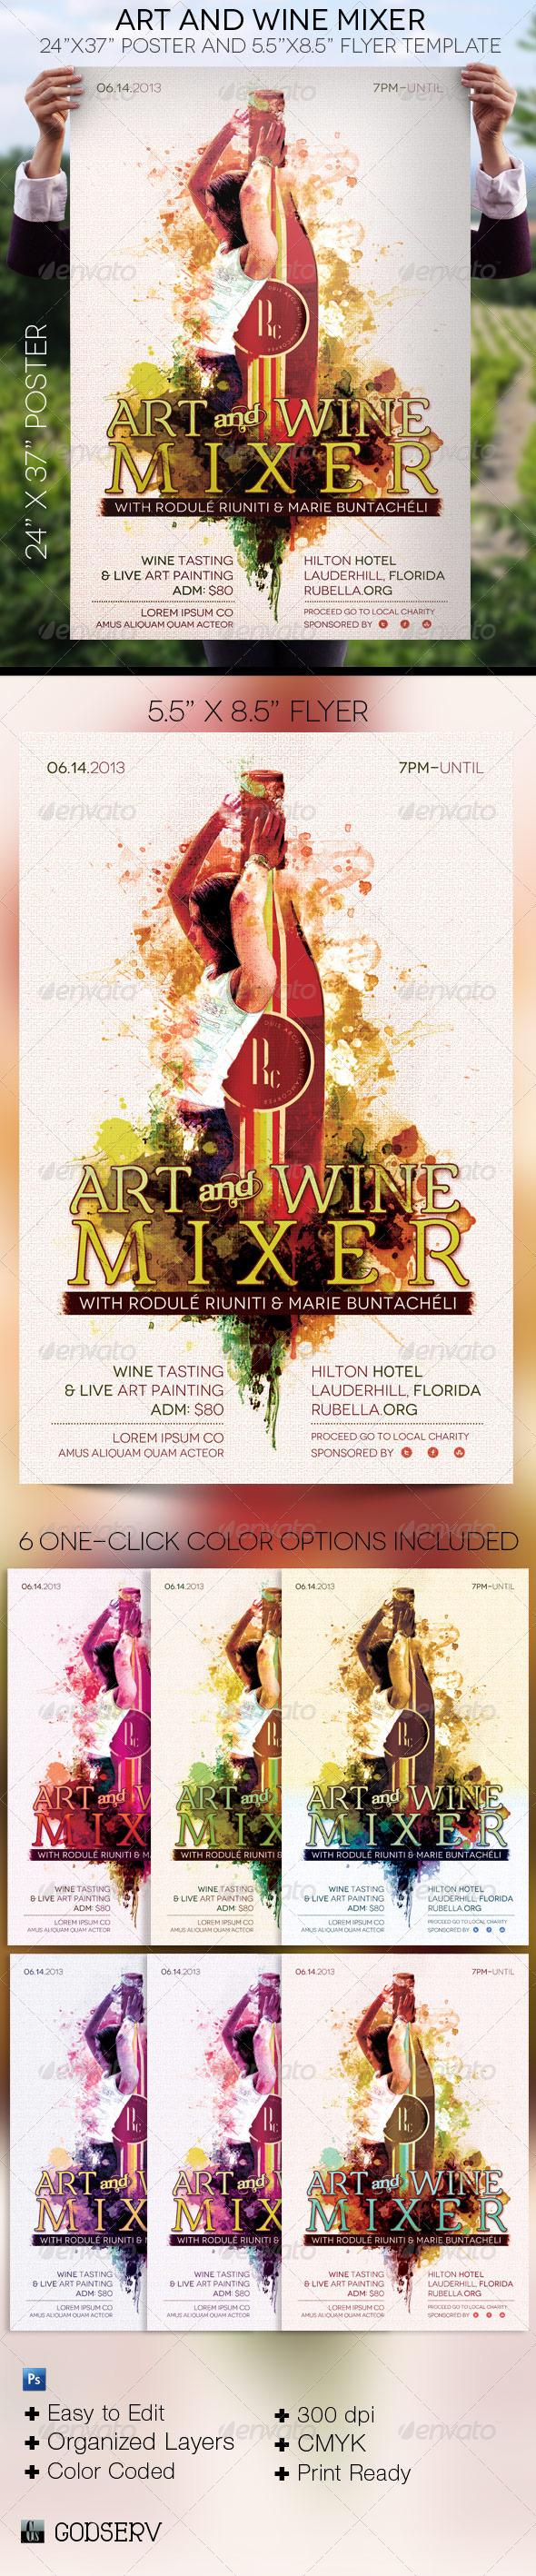 Art Wine Mixer Poster Flyer Template - Signage Print Templates